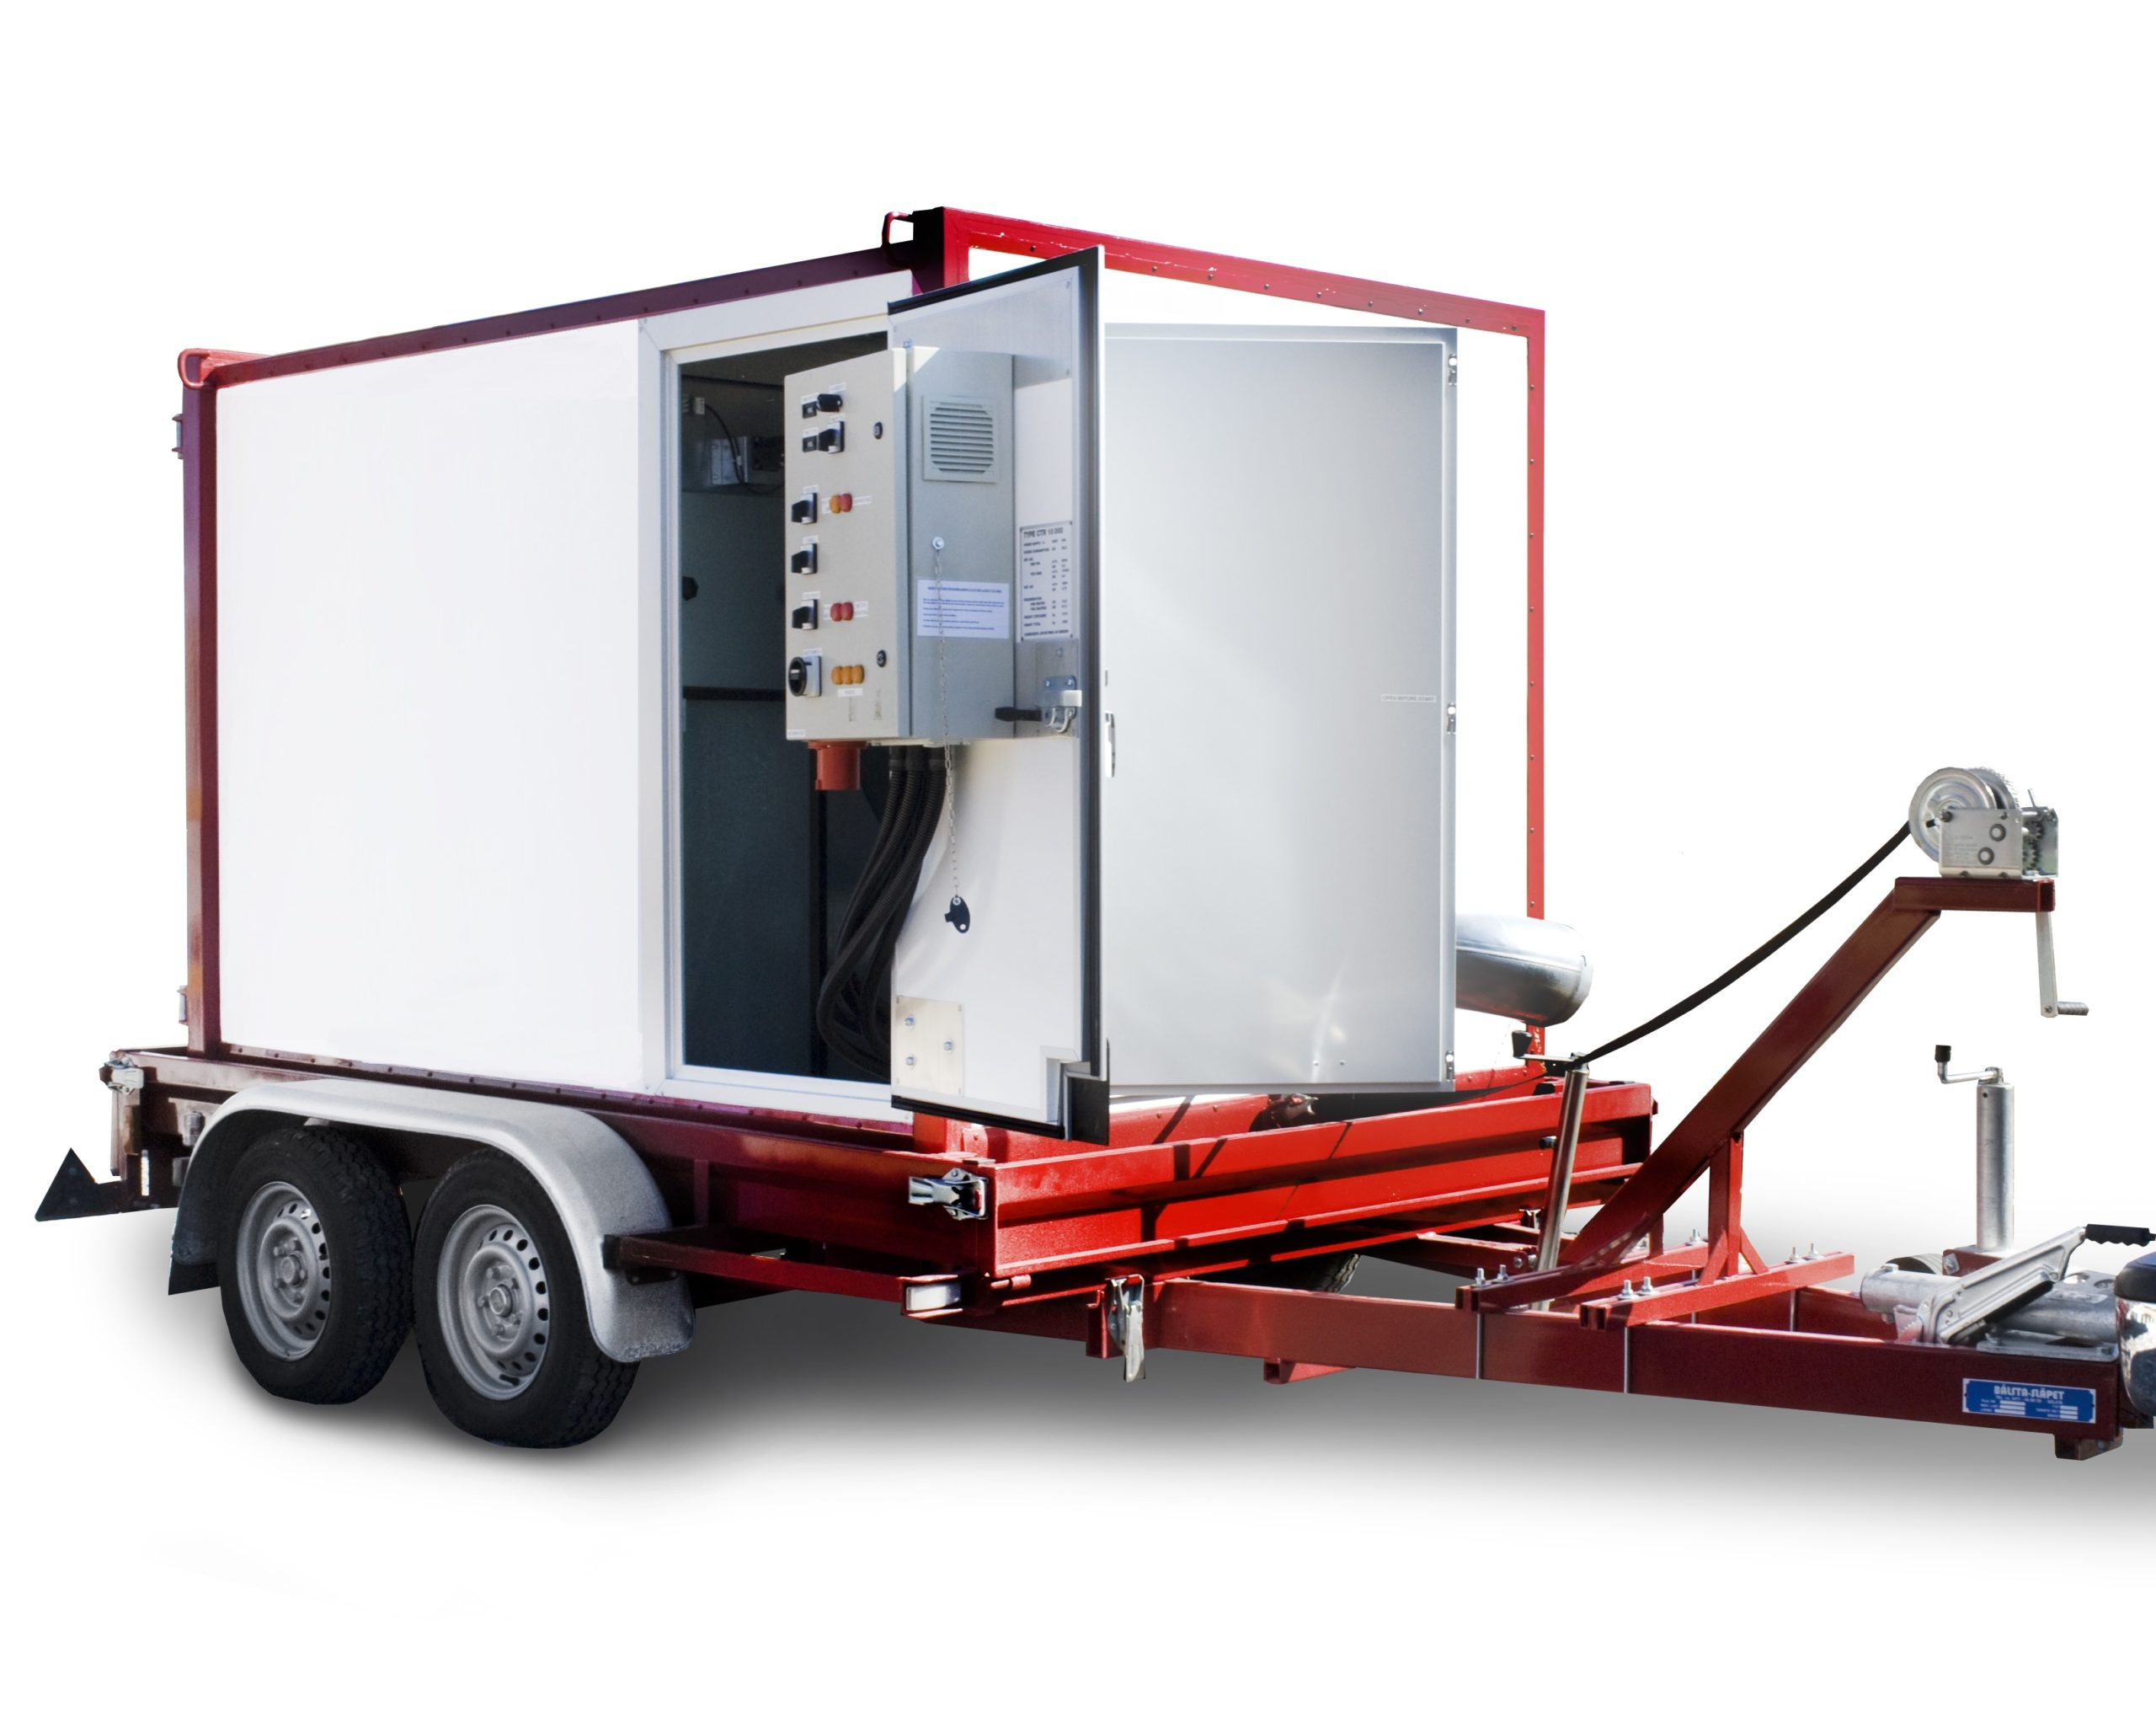 trailer mounted mobile heater